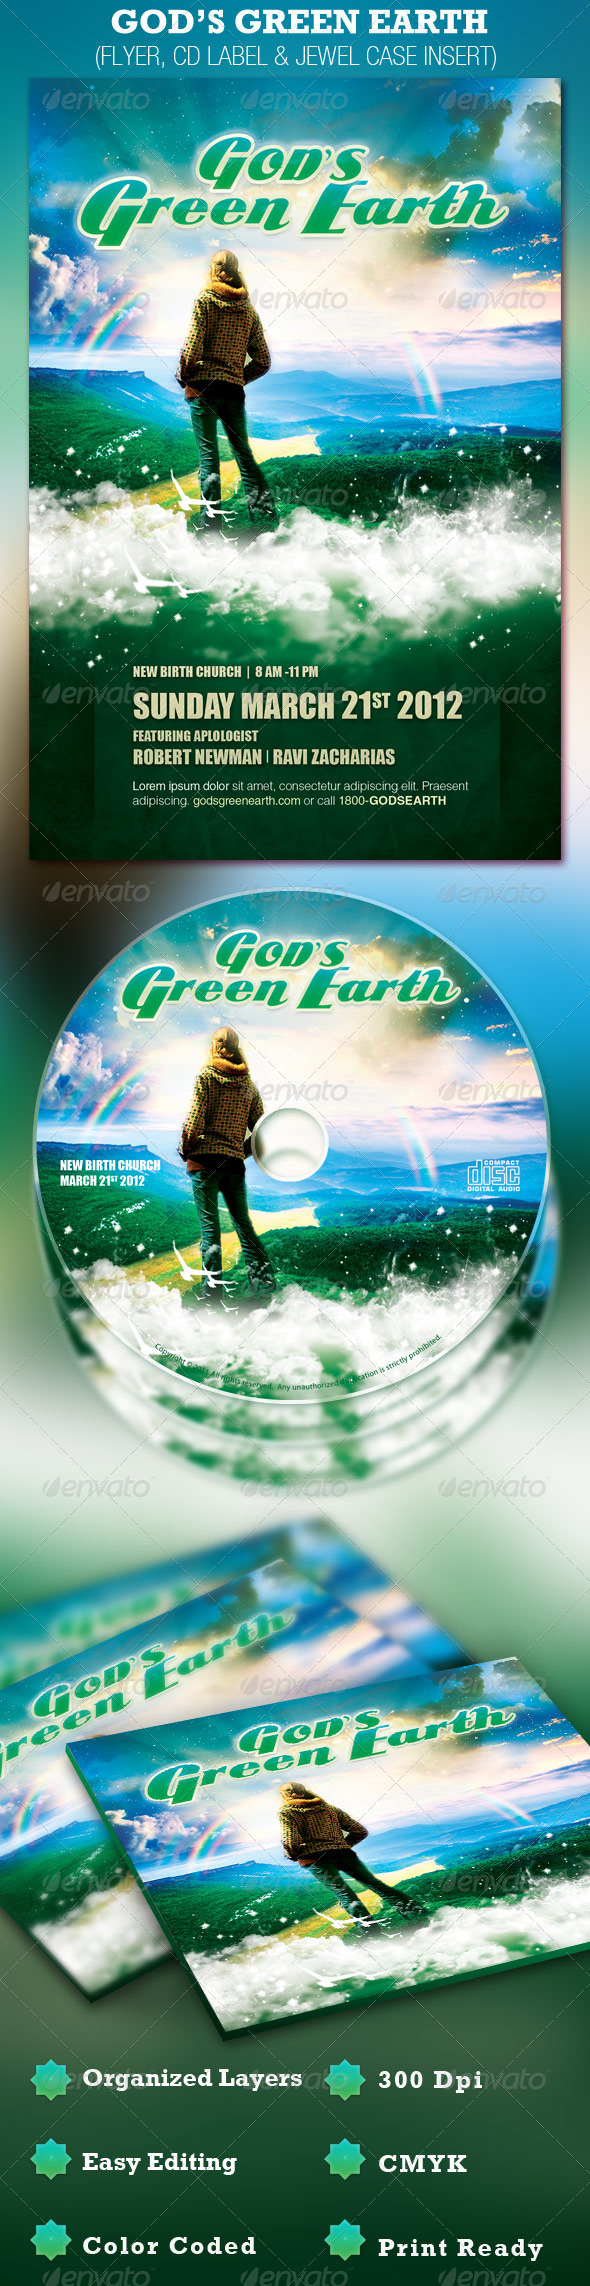 God's Green Earth Church Flyer and CD Template - Church Flyers